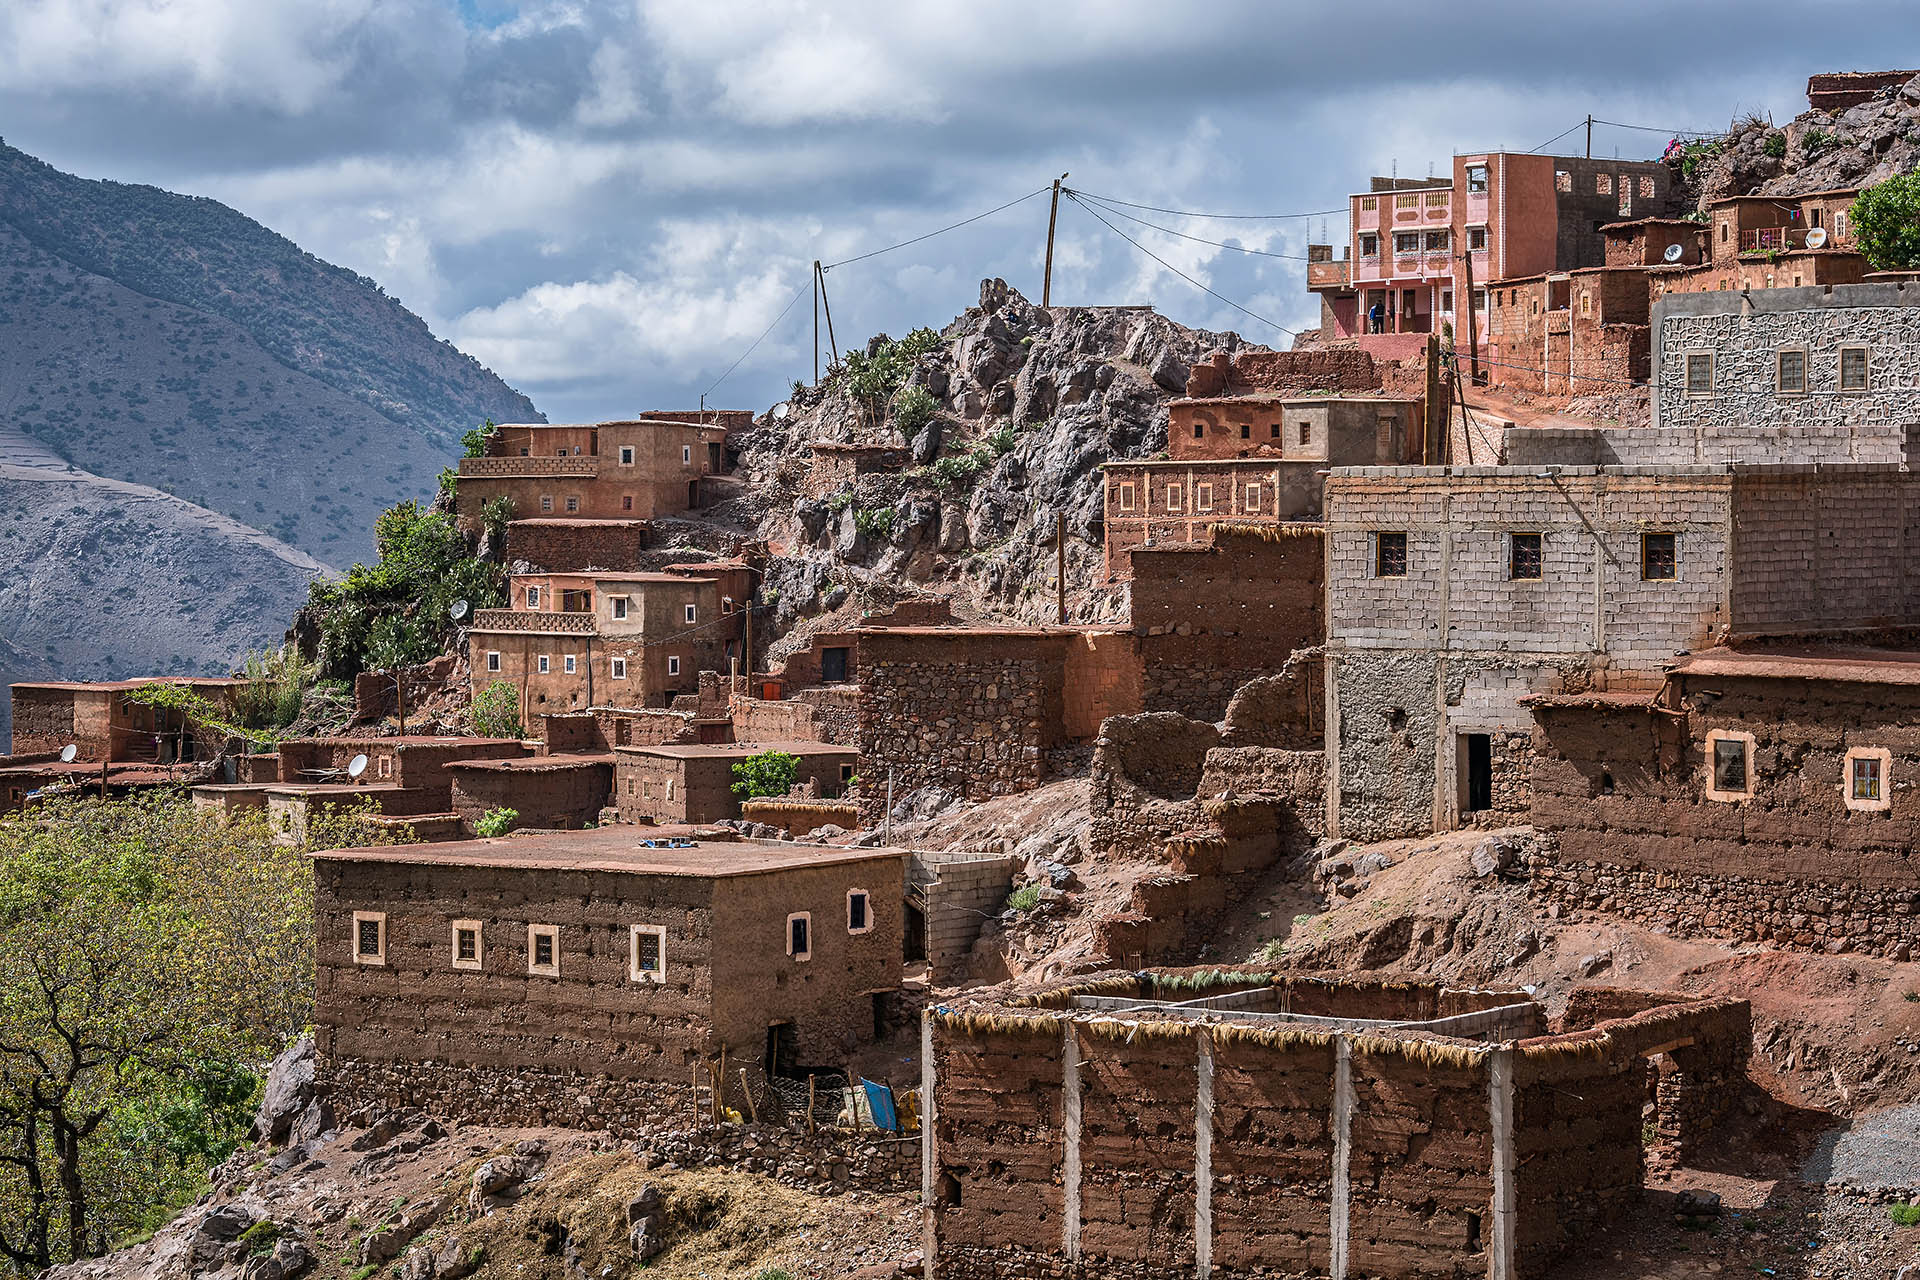 houses, Id Issa Village, Azzaden Valley, High Atlas Mountains, Morocco